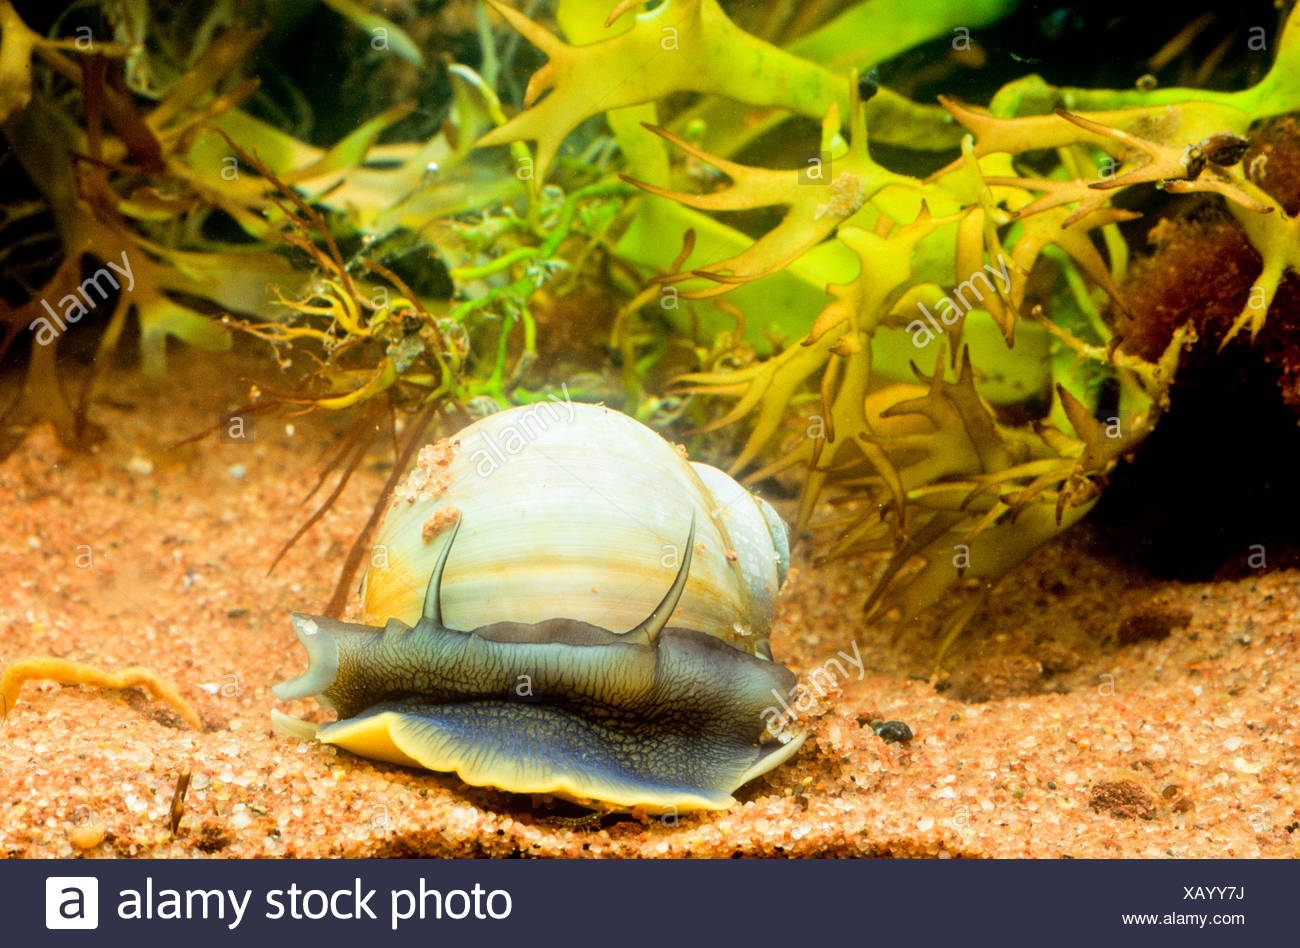 Northern Moon Snail, (Lunatia heros) Stock Photo